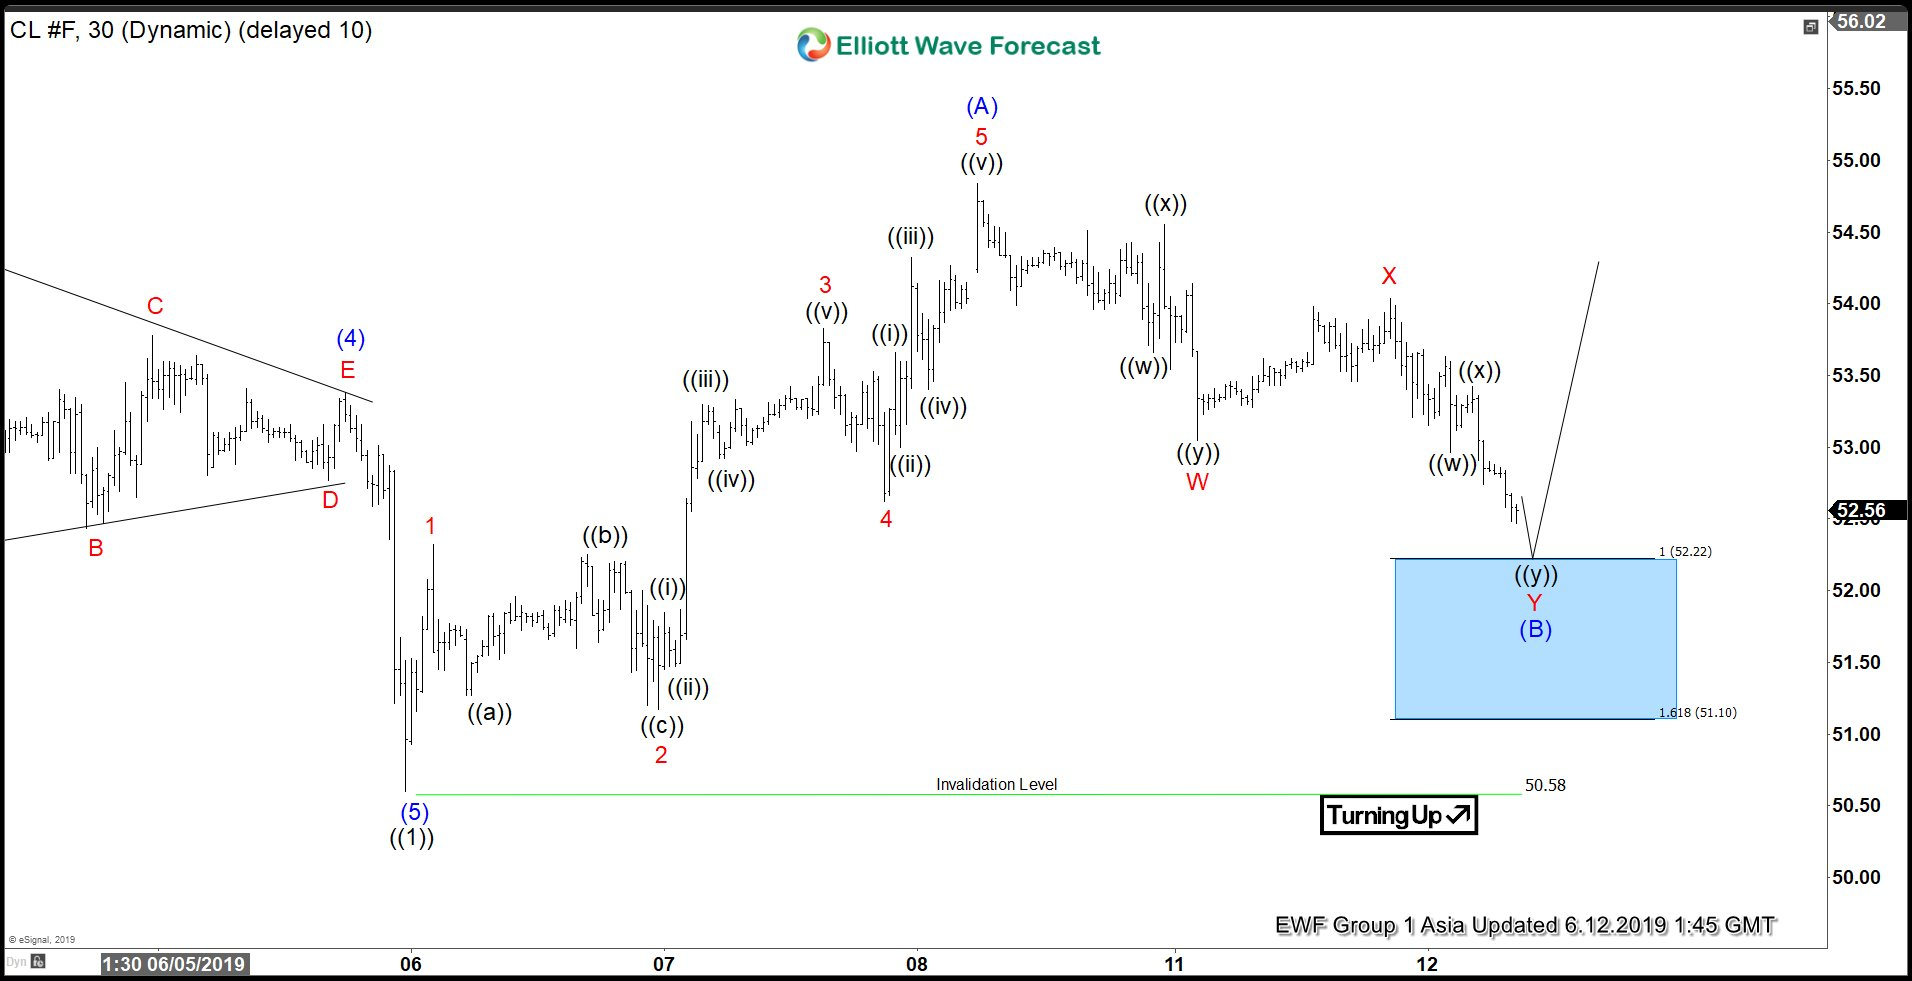 Elliott Wave View Calling for Extension Higher in Oil